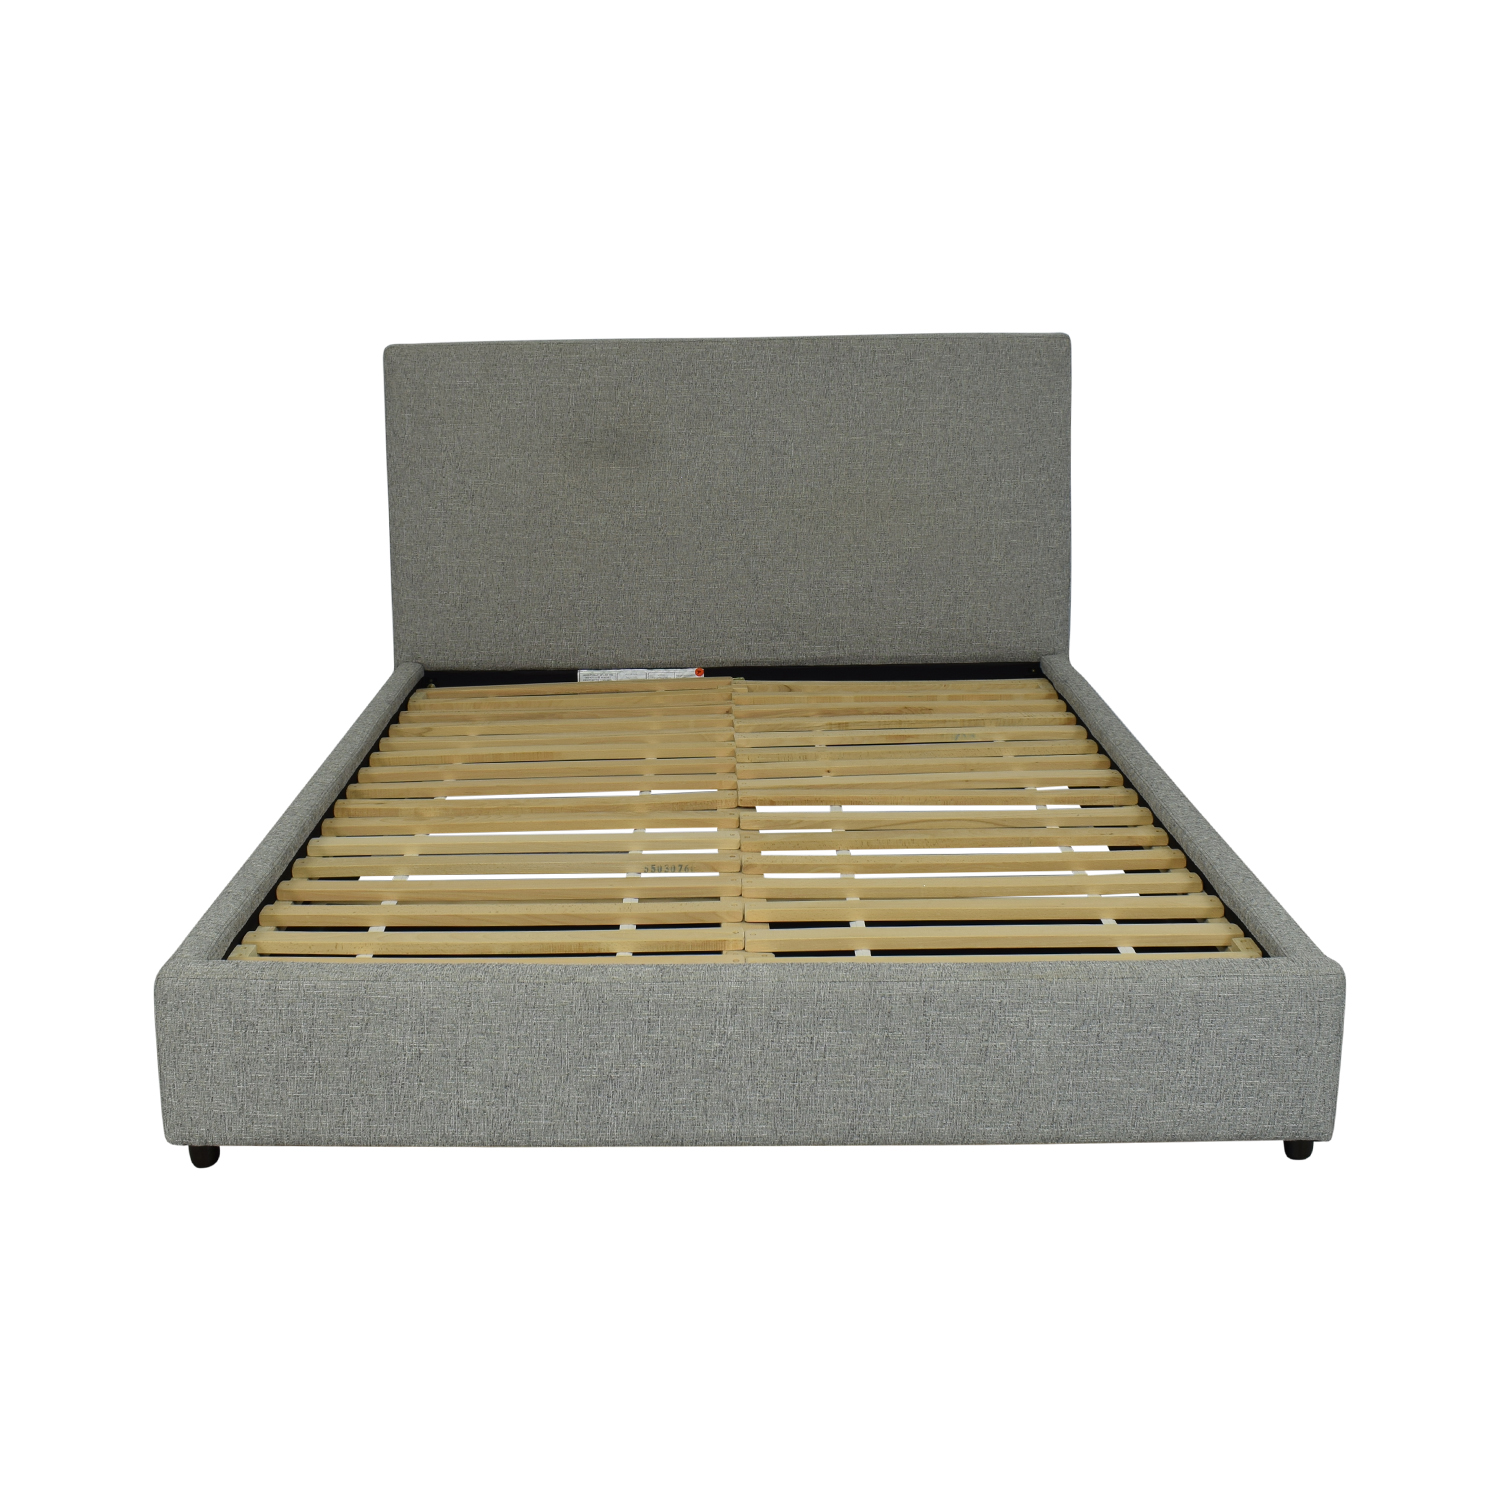 West Elm West Elm Contemporary Upholstered Storage Queen Bed price